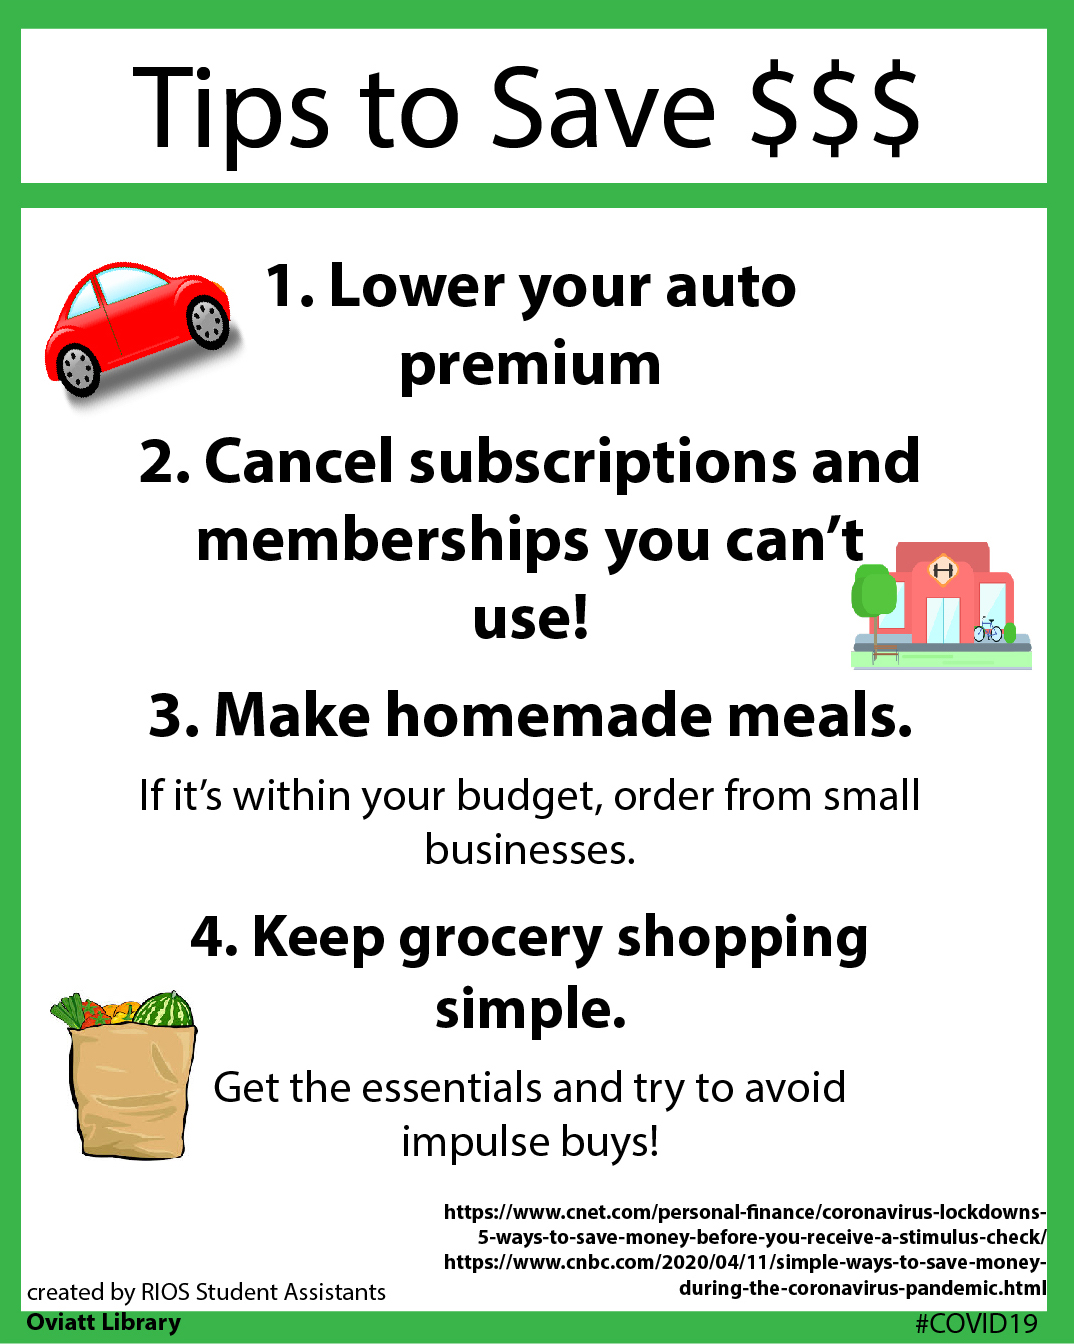 Tips to Save $$$